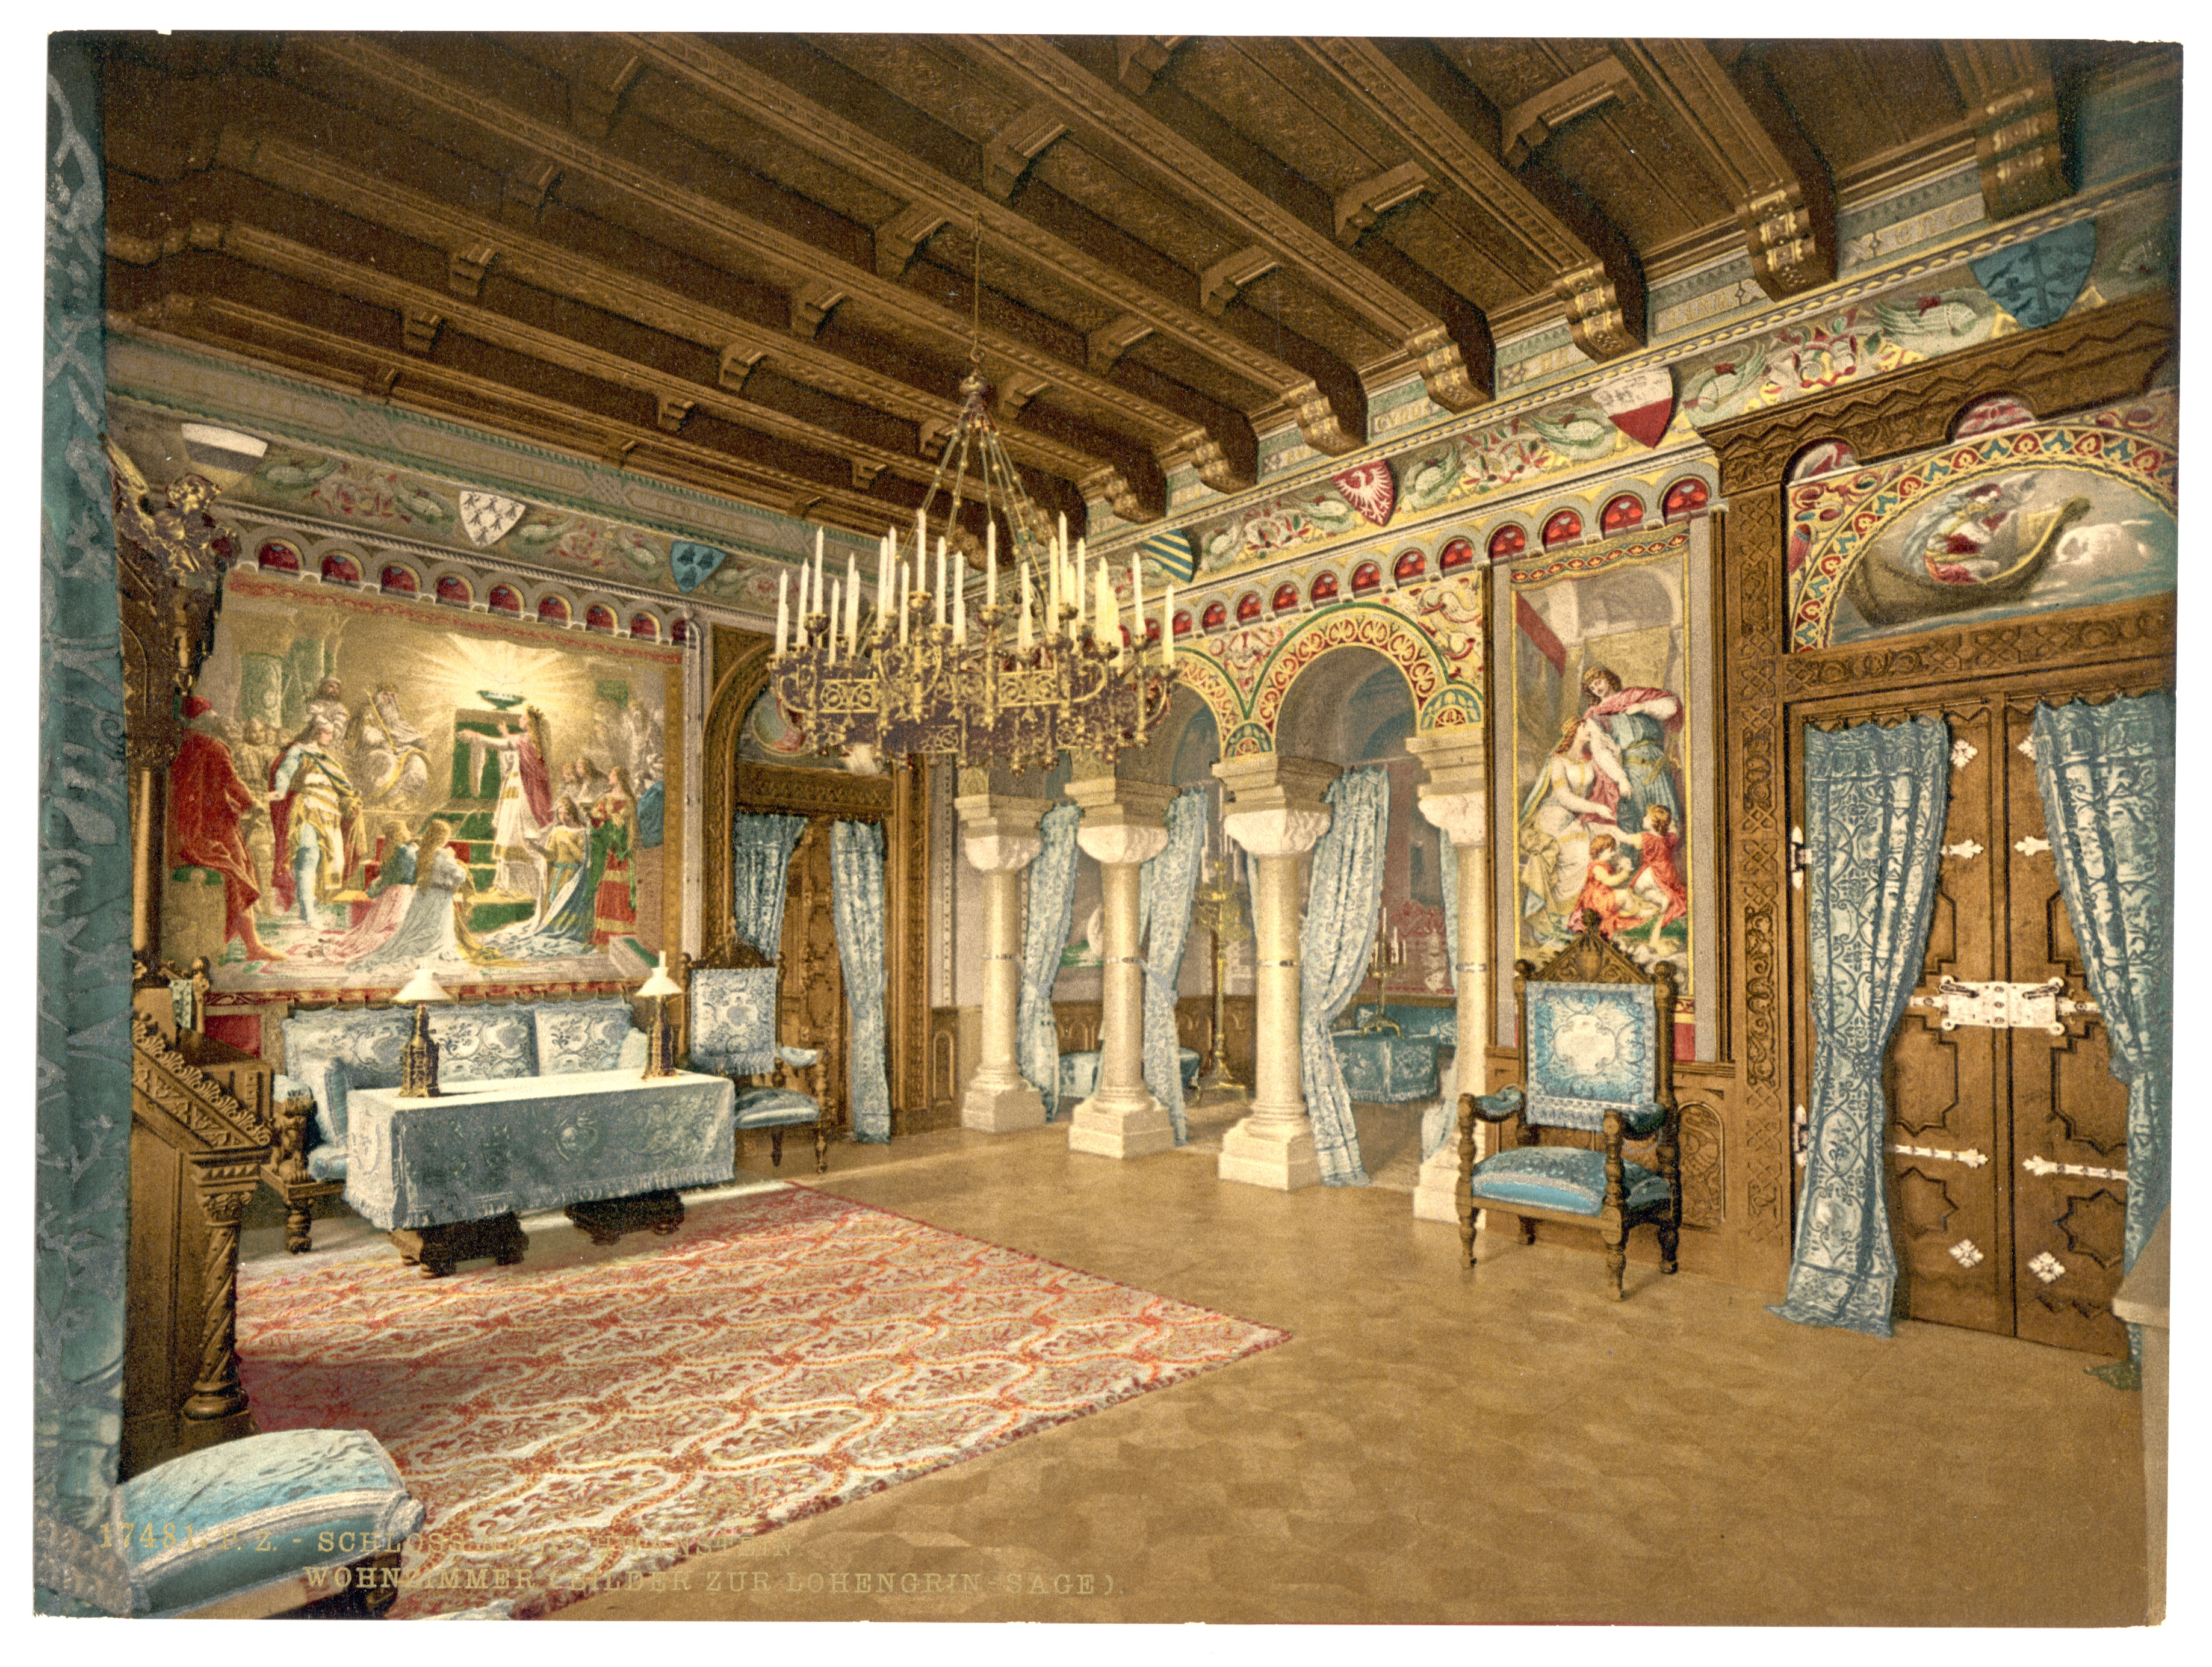 File:Pictures of the Lohengrin story, drawing room ...